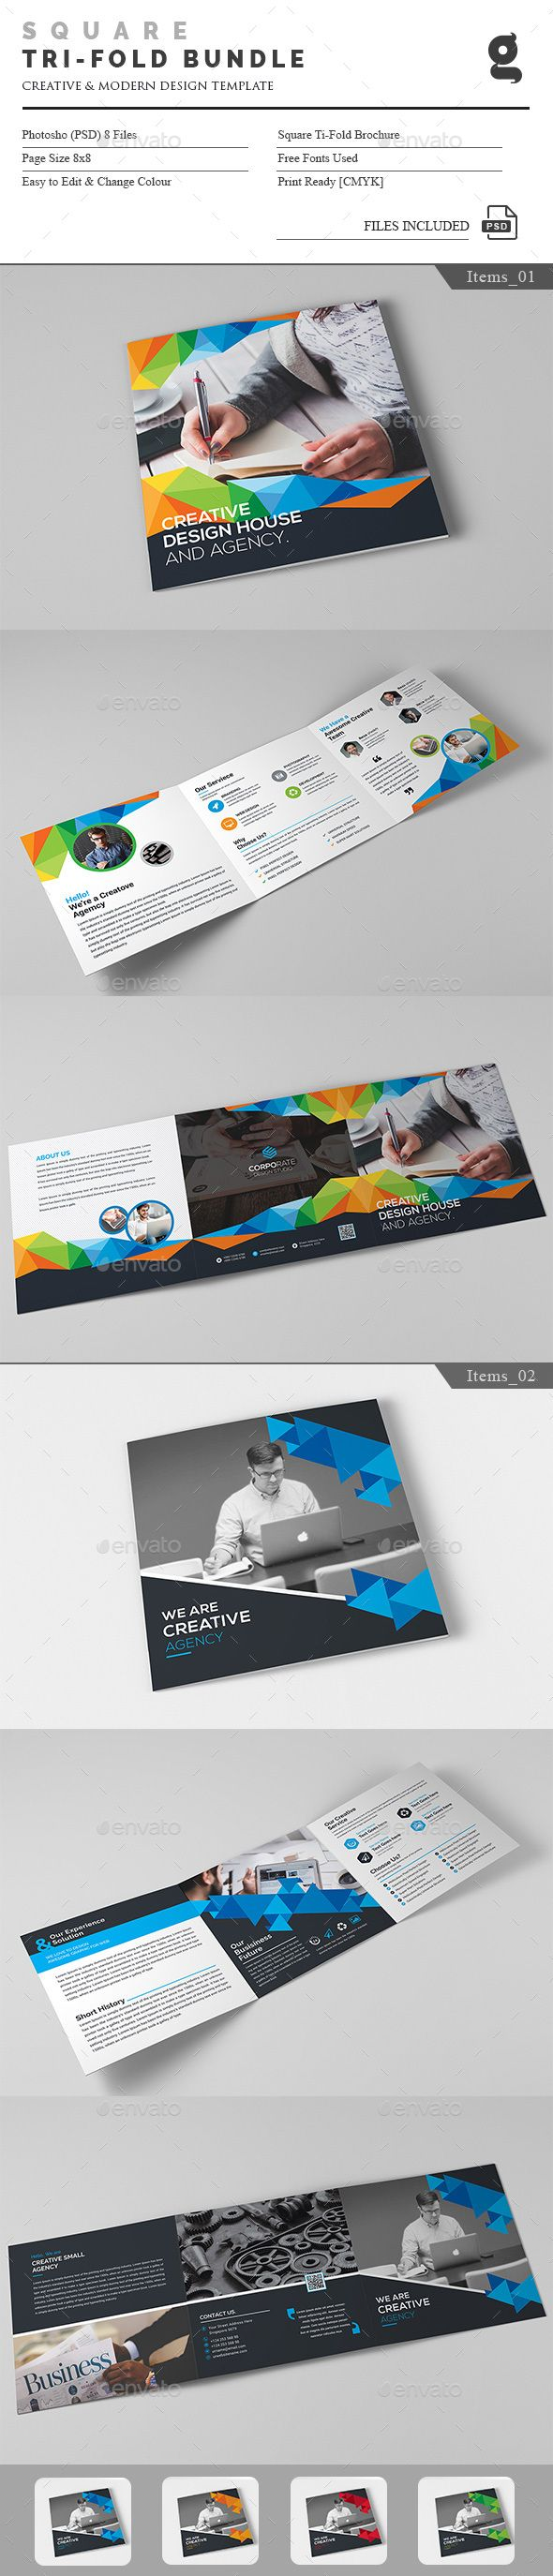 Square Tri-Fold PSD Bundle  Template • Only available here ➝ http://graphicriver.net/item/square-trifold-bundle/16568315?ref=pxcr